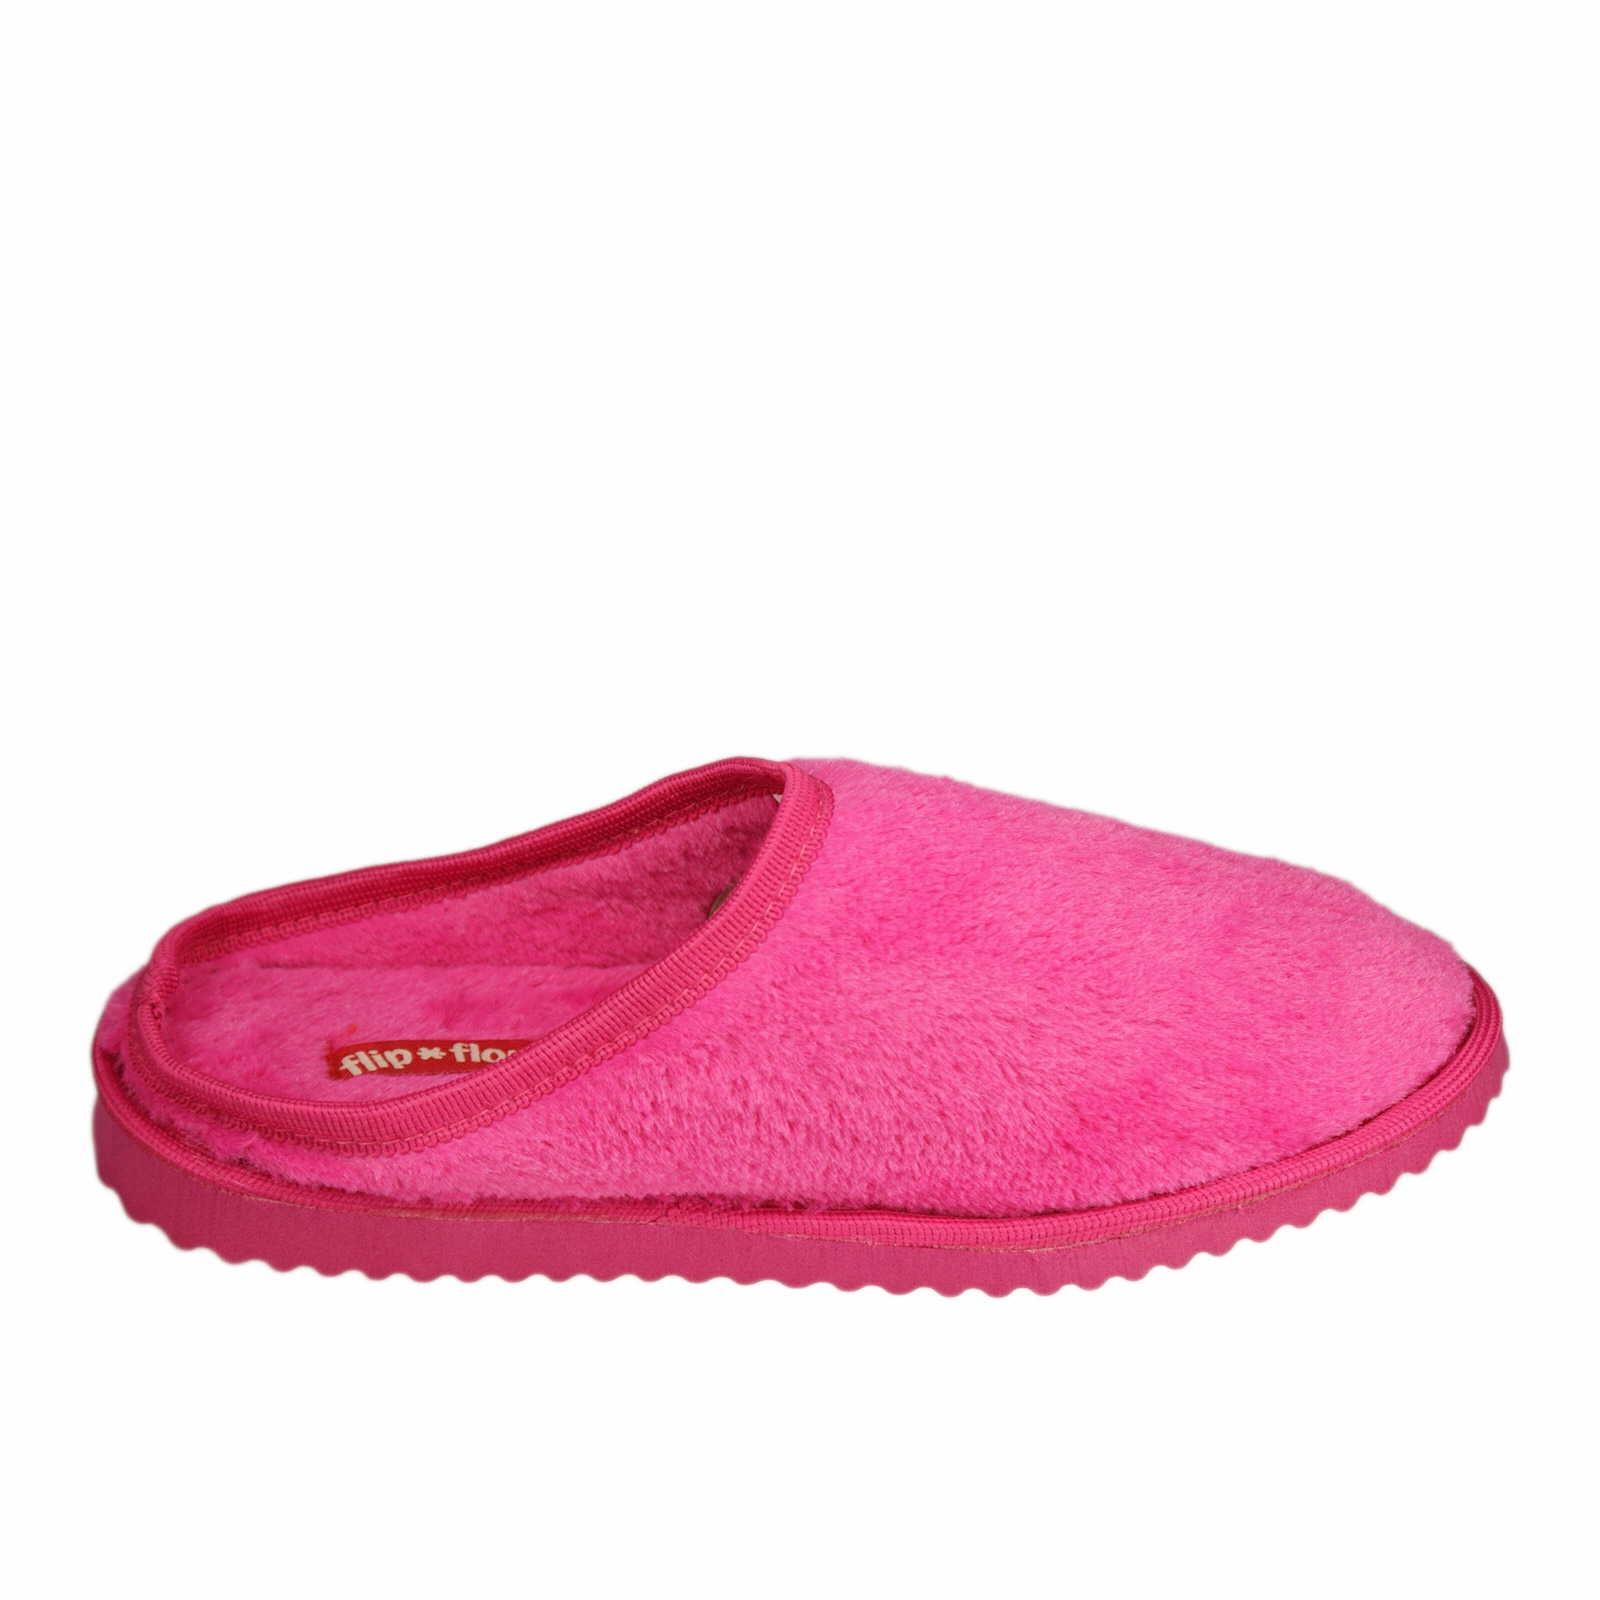 flip flop pantoffel homestay geranium f r damen in pink schuhparadies. Black Bedroom Furniture Sets. Home Design Ideas